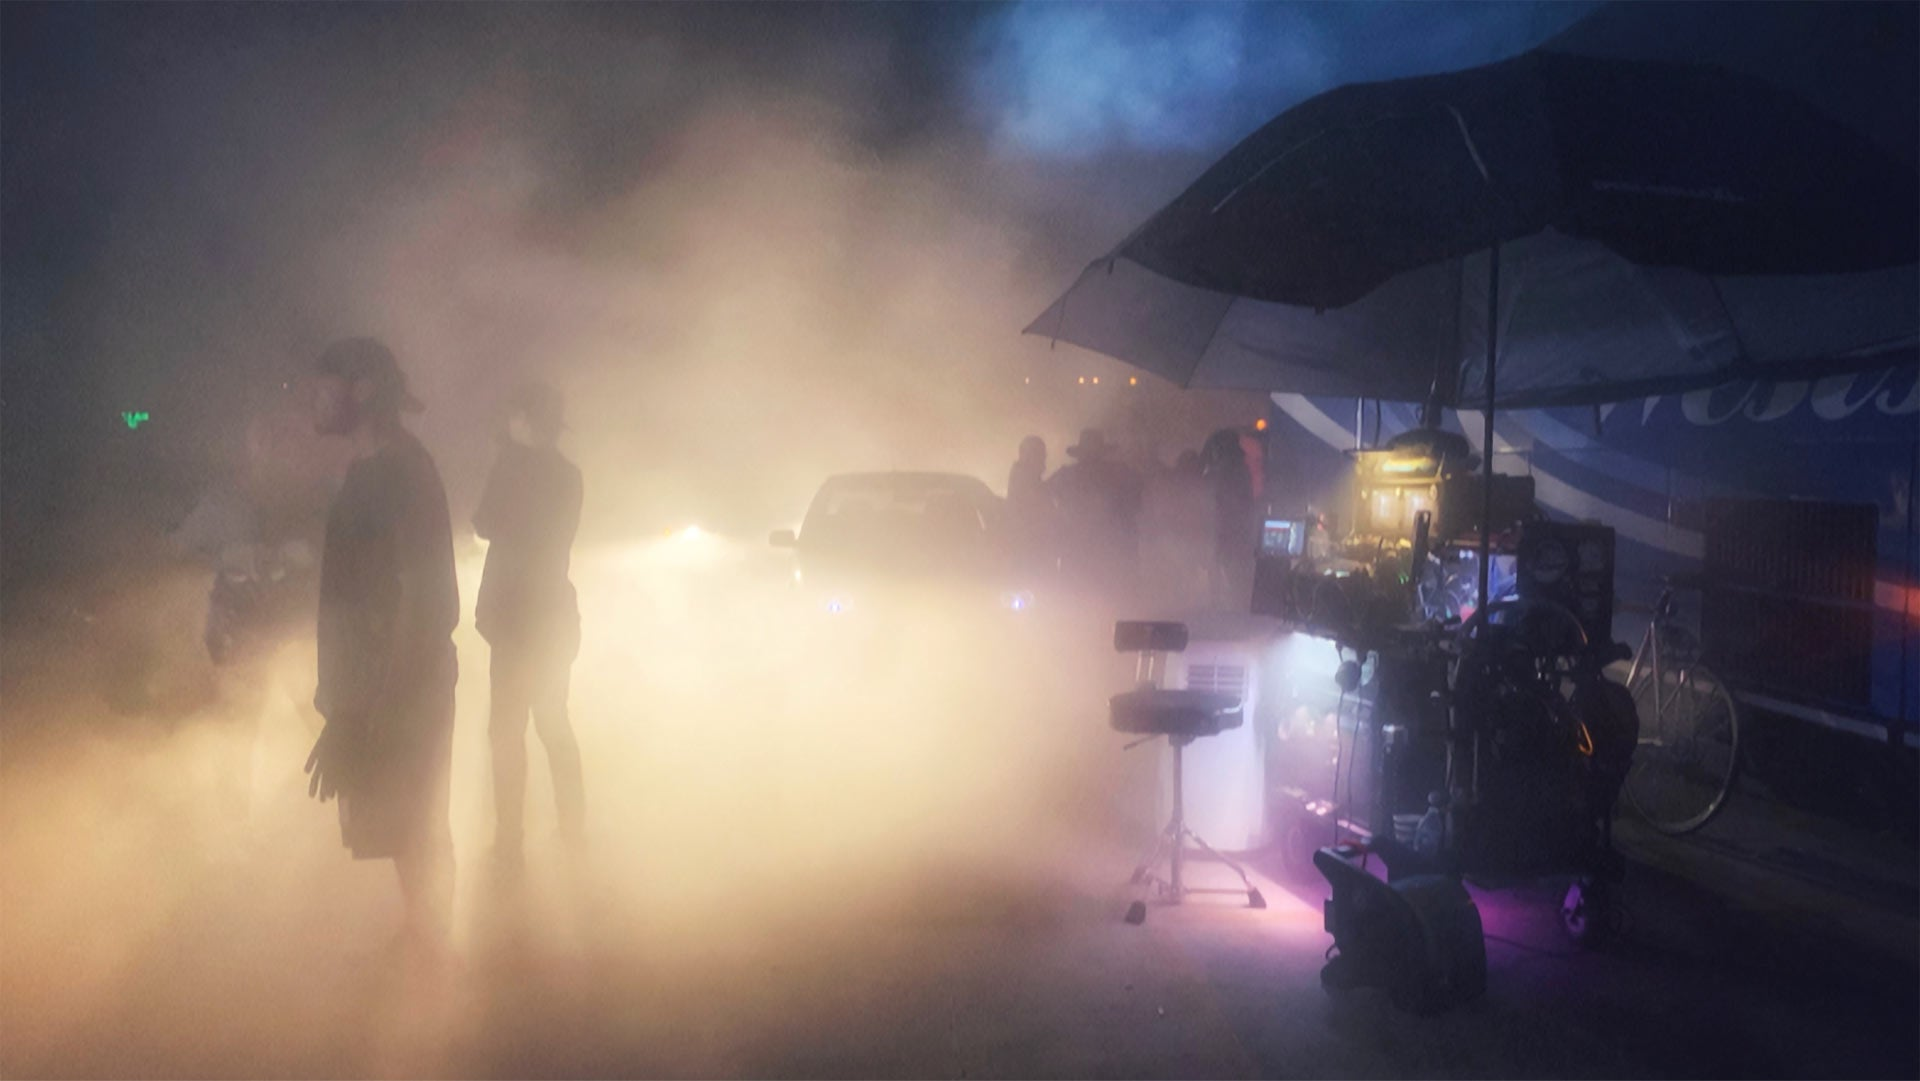 Smoke machines on the set of Bill & Ted Face the Music